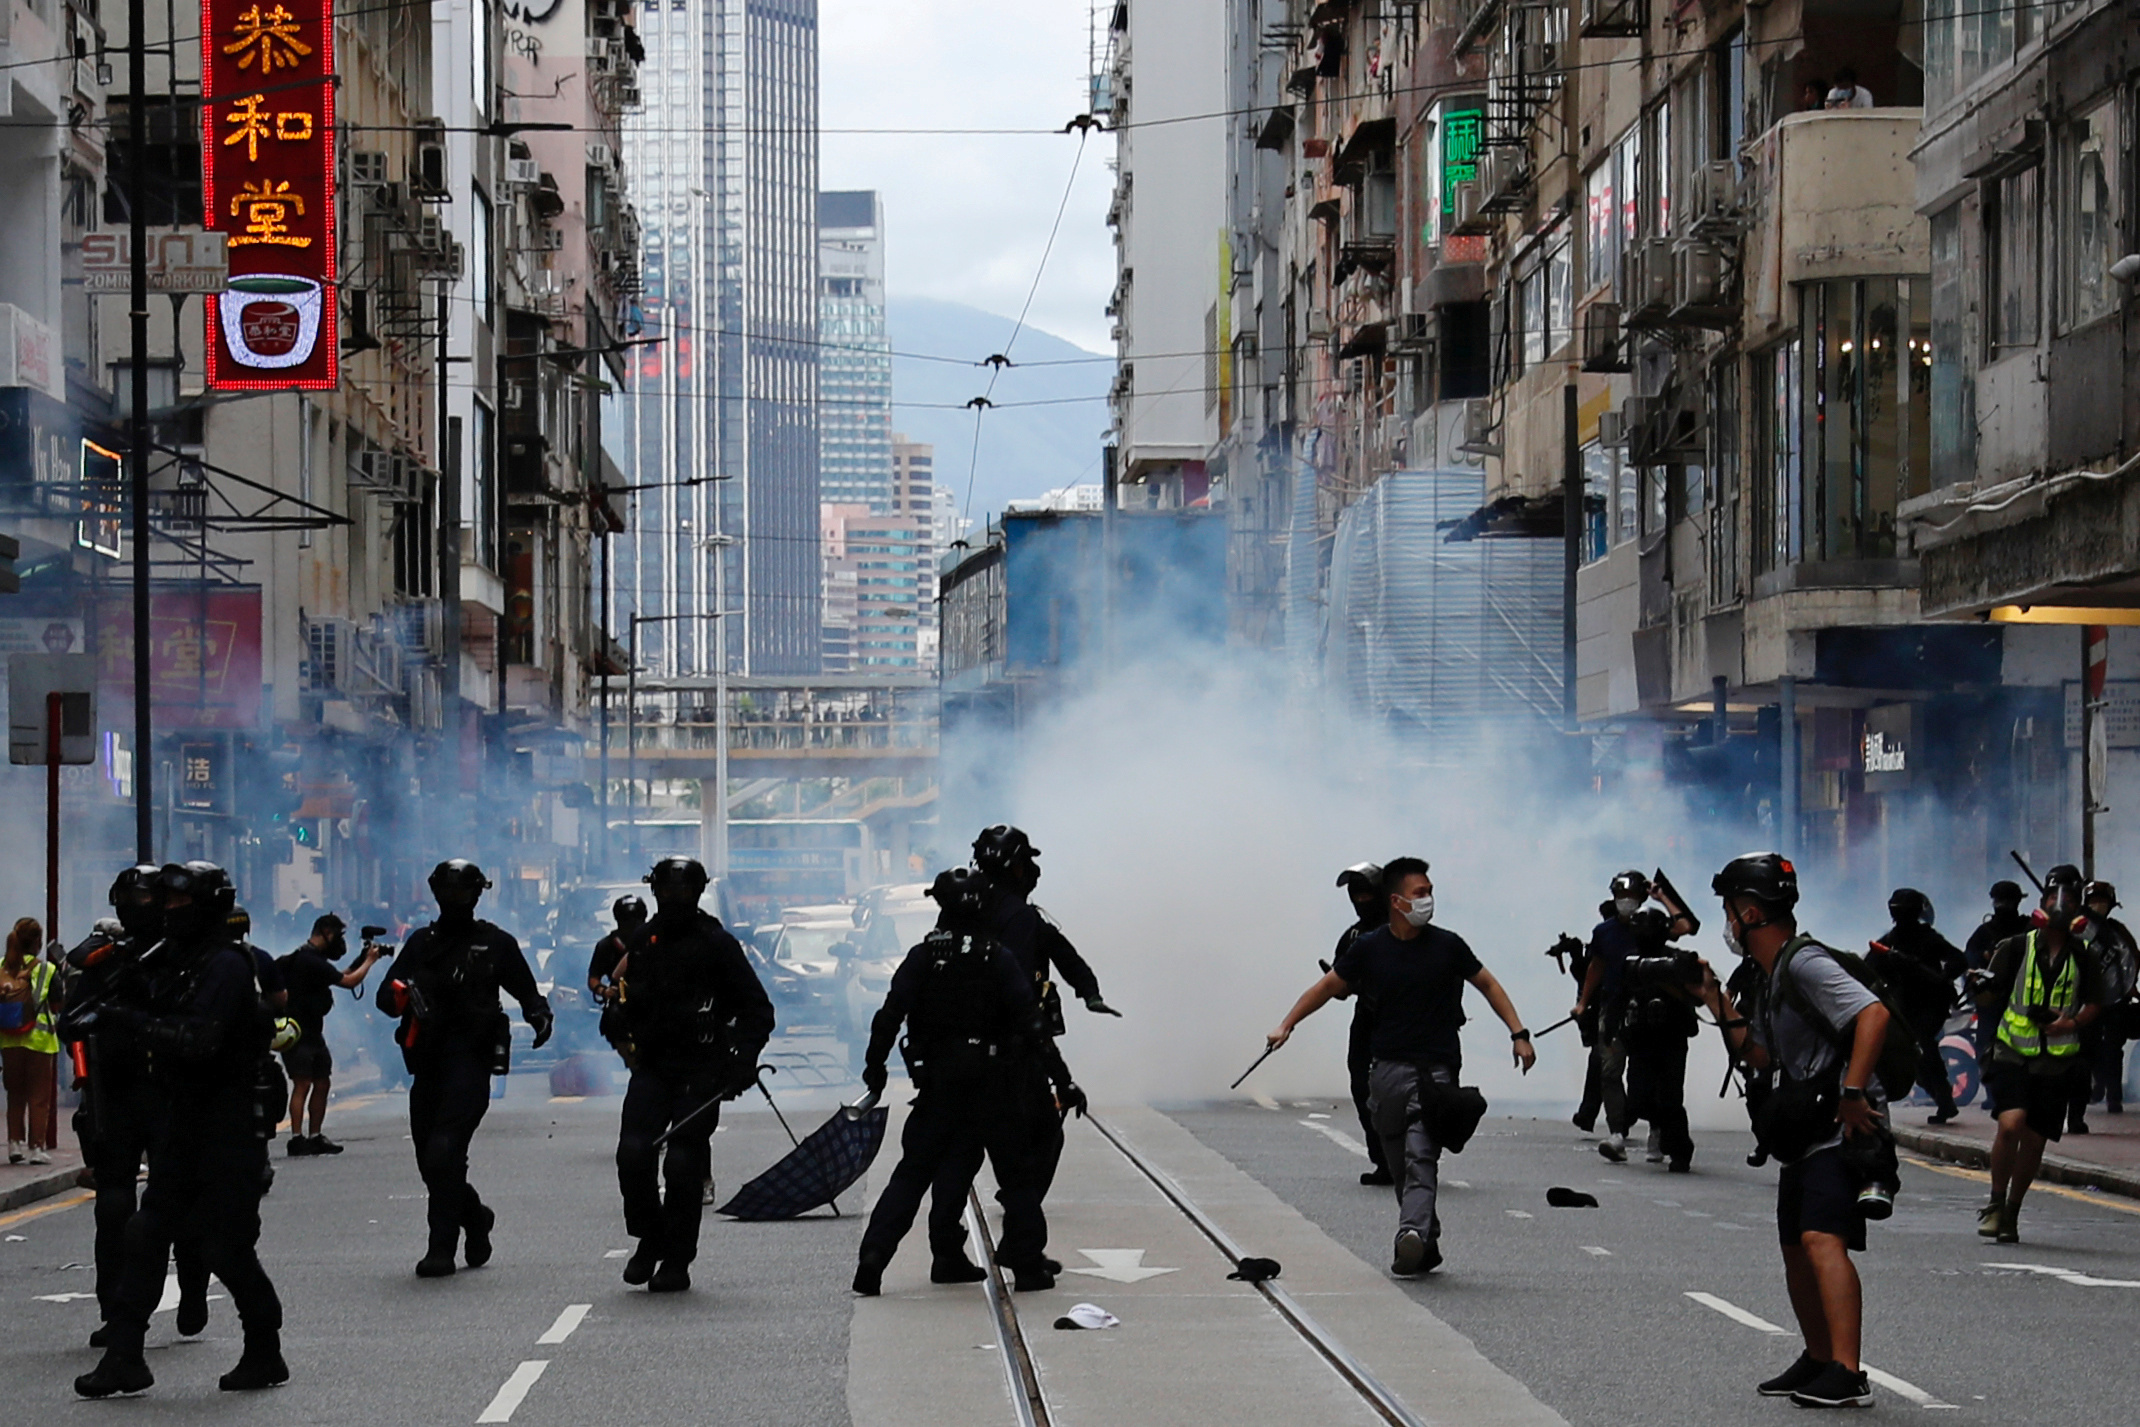 Riot police fire tear gas into the crowds to disperse anti-national security law protesters during a march at the anniversary of Hong Kong's handover to China from Britain in Hong Kong, China July 1, 2020.